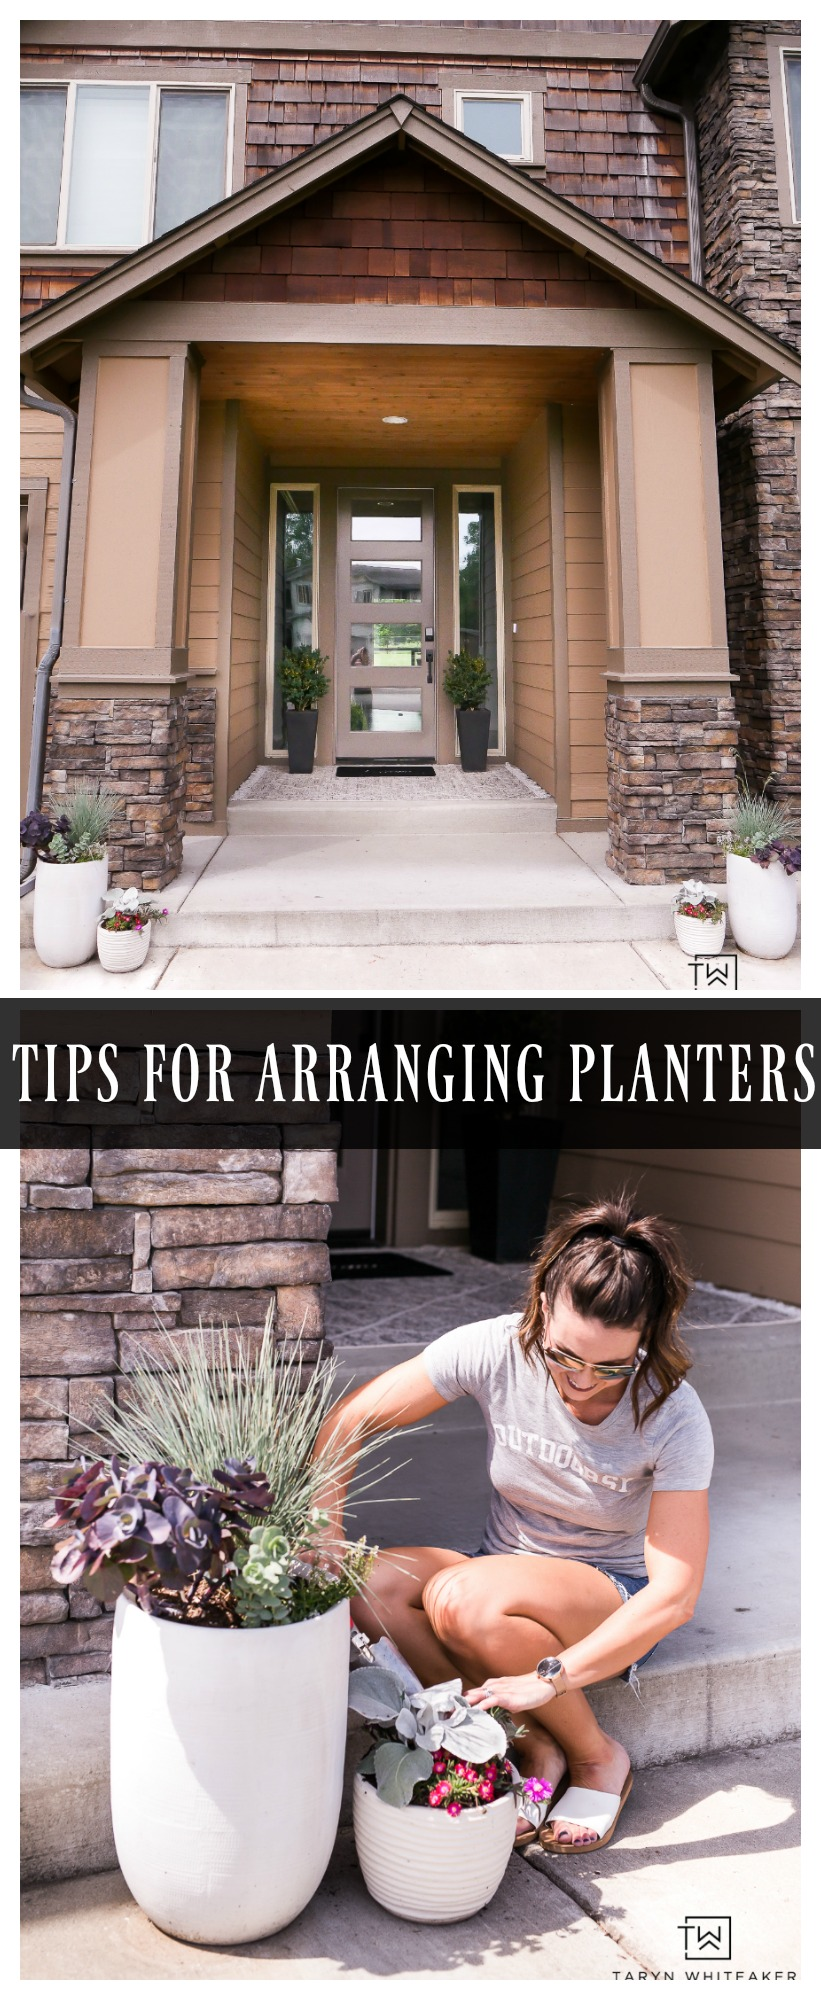 Gardening this summer? Here are a few tips for arranging planters for your porch!